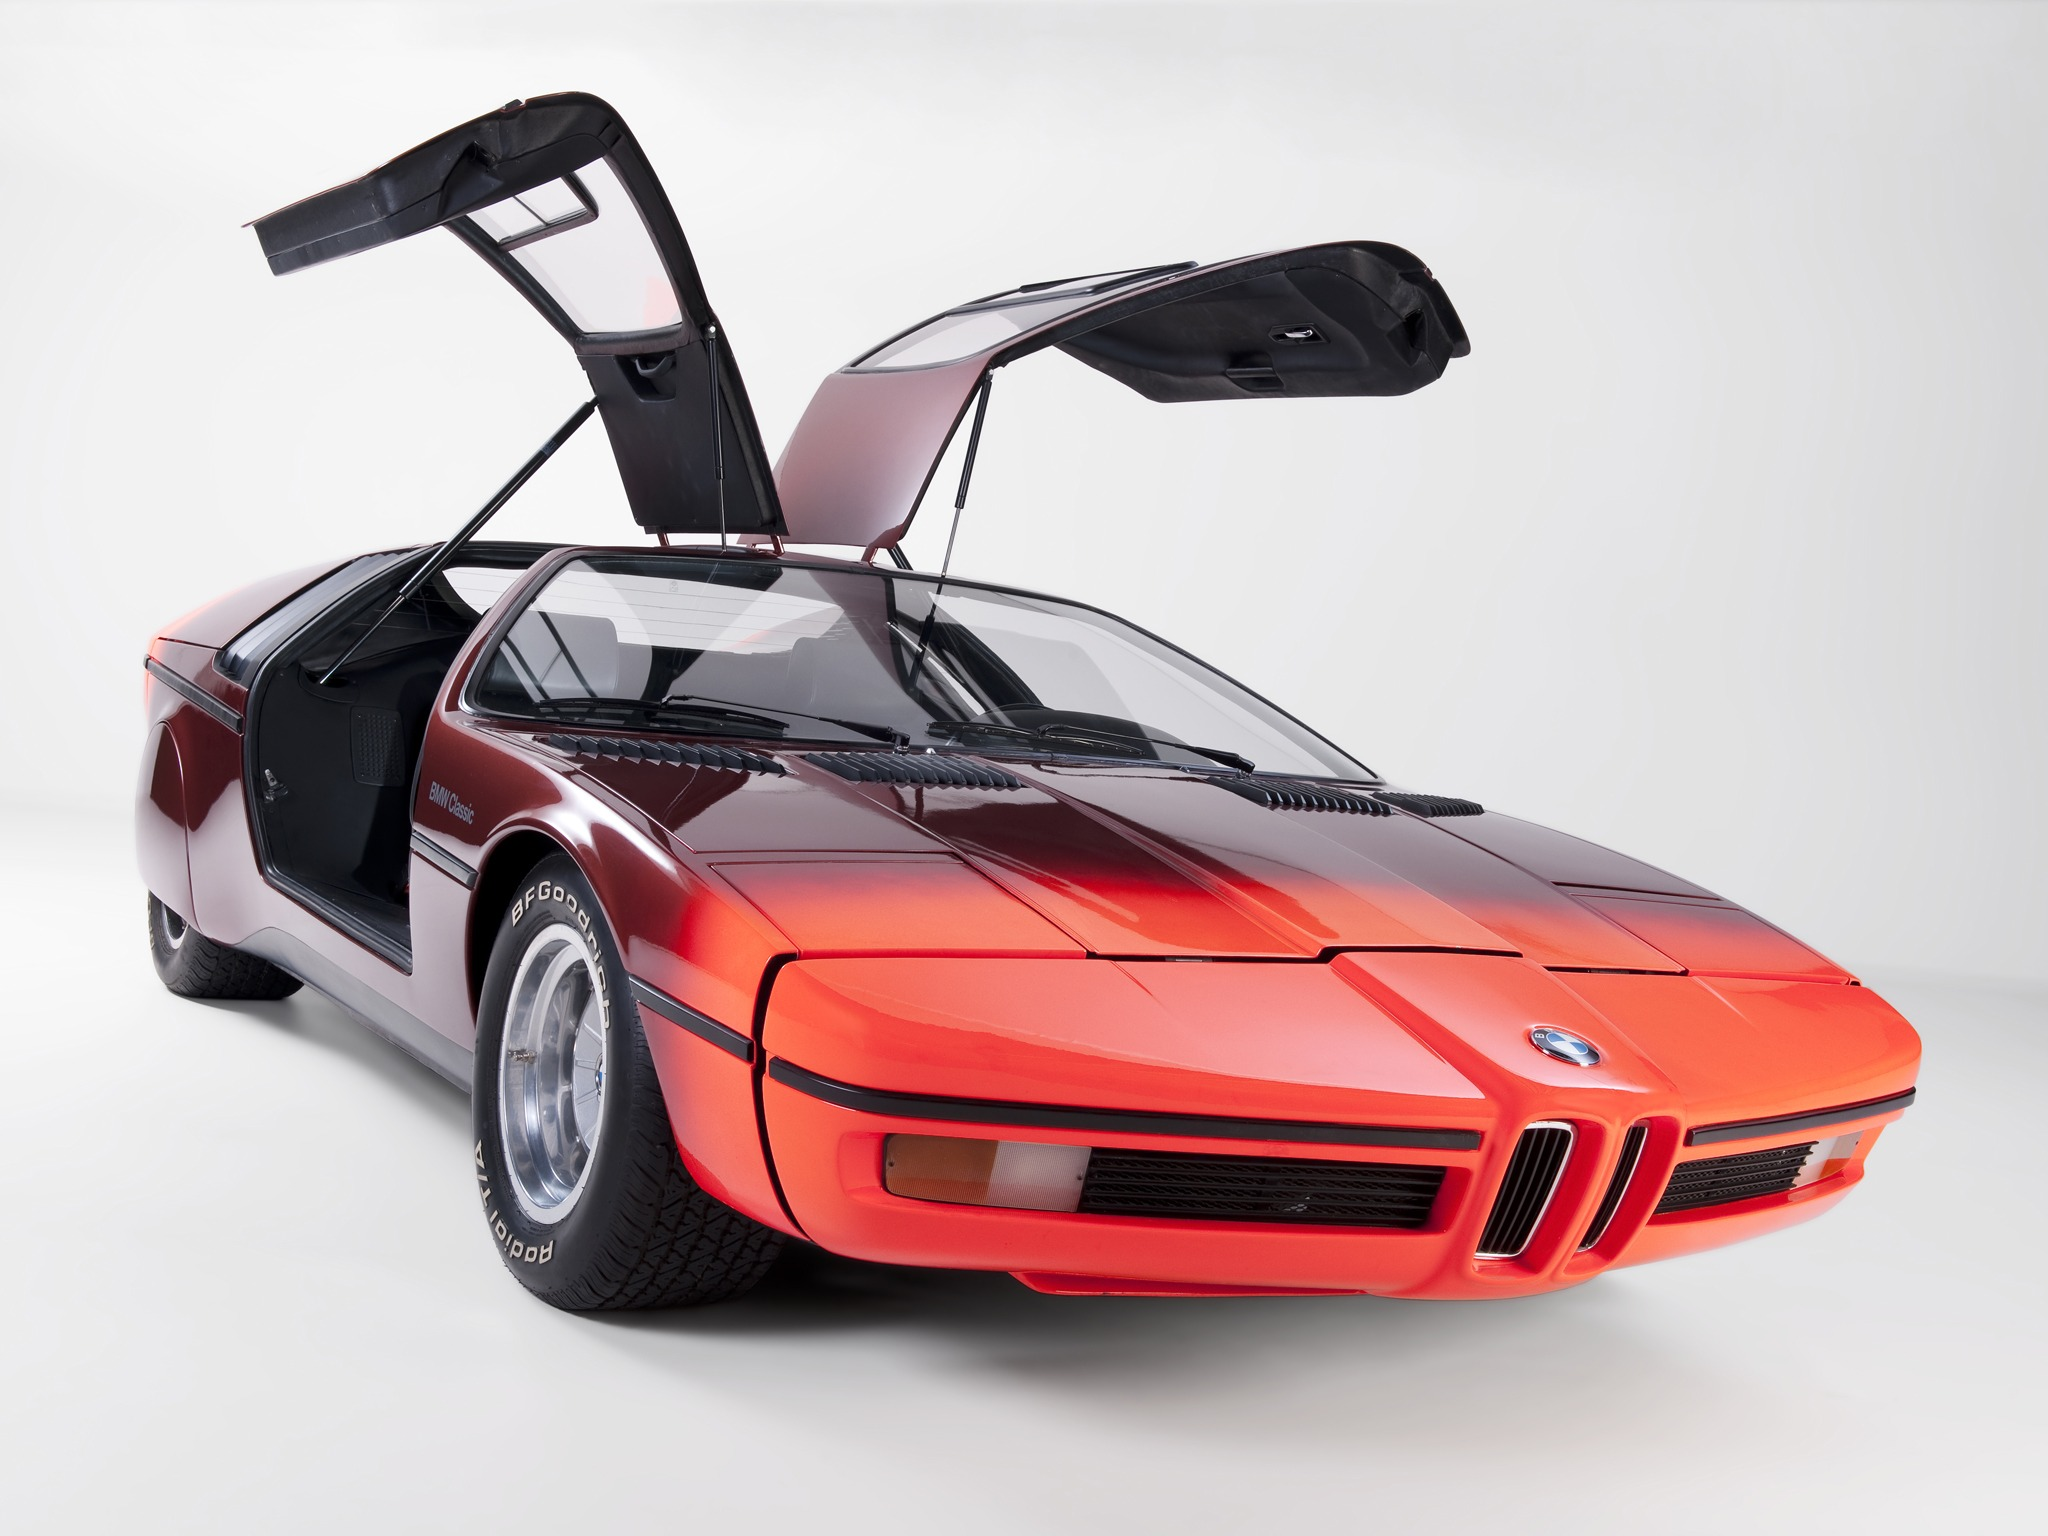 BMW Turbo (1972) – Old Concept Cars